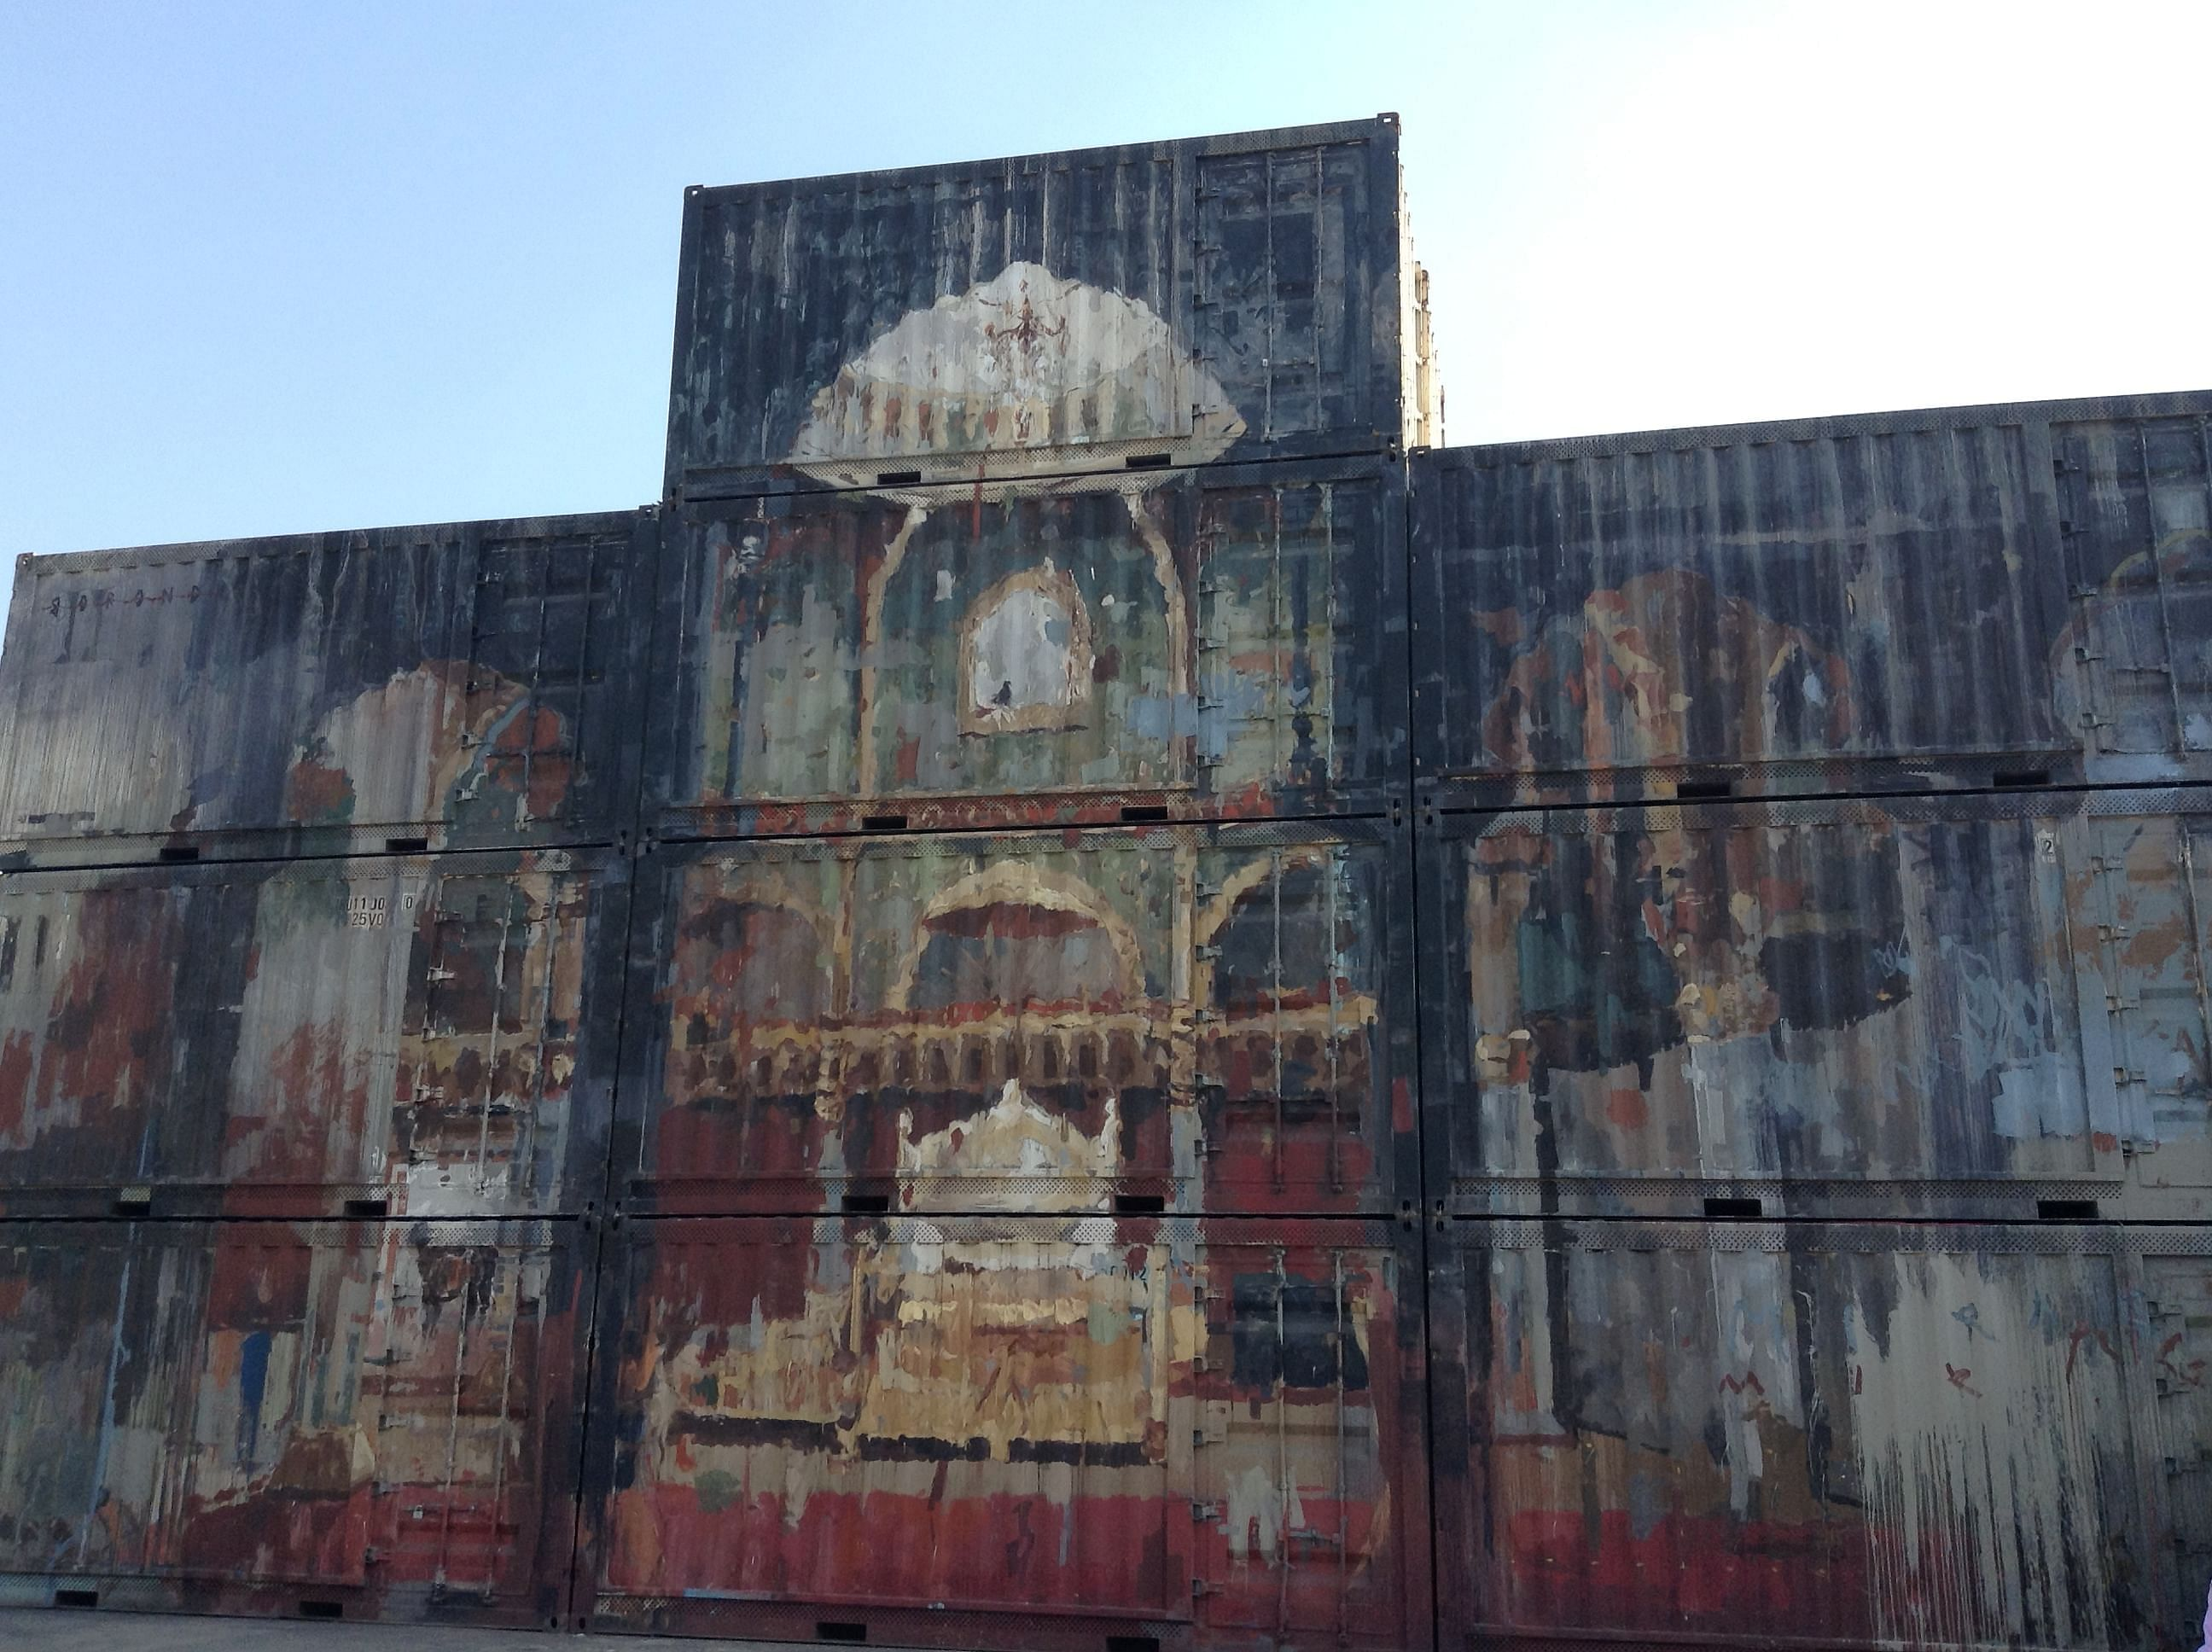 The Mysore Palace painted on 10 containers